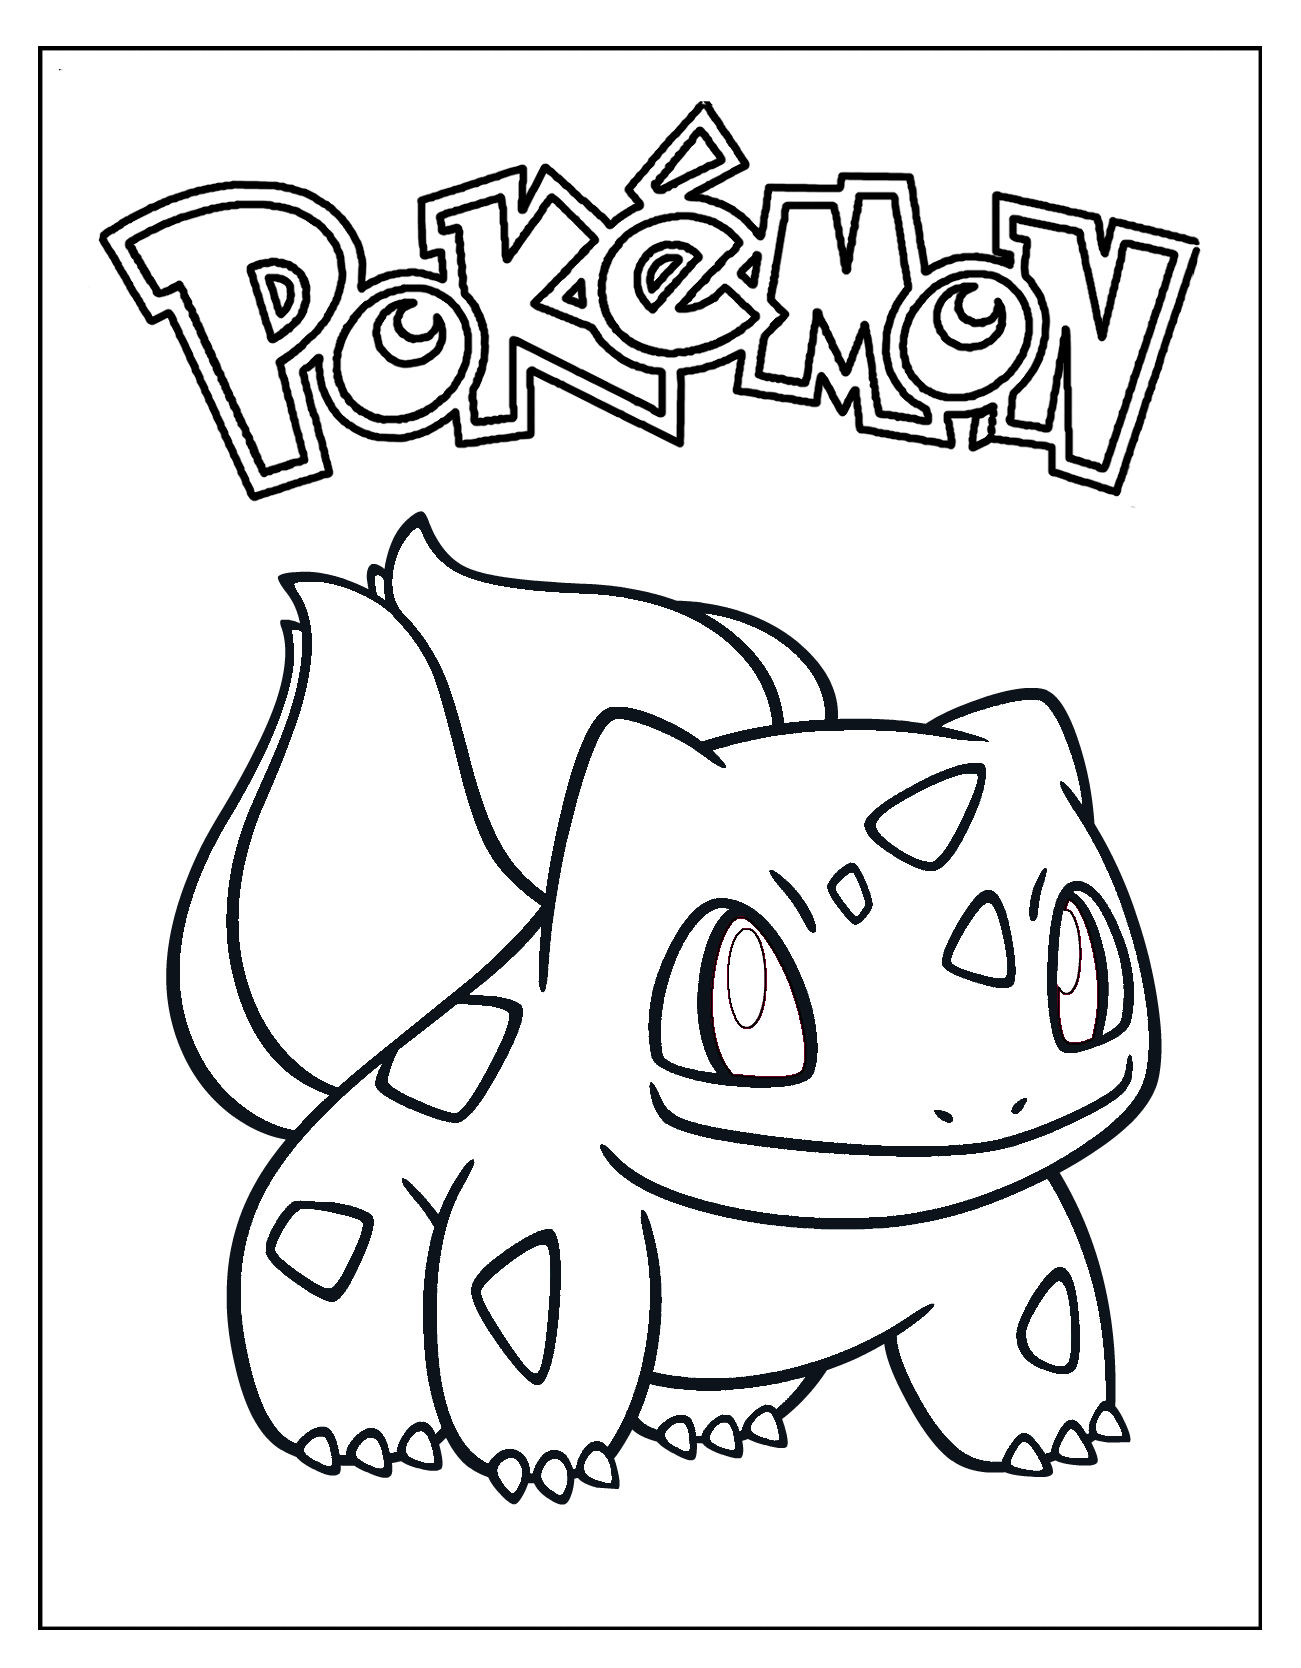 bulbasaur coloring pages bulbasaur coloring sheet | coloring pages | Coloring pages  bulbasaur coloring pages